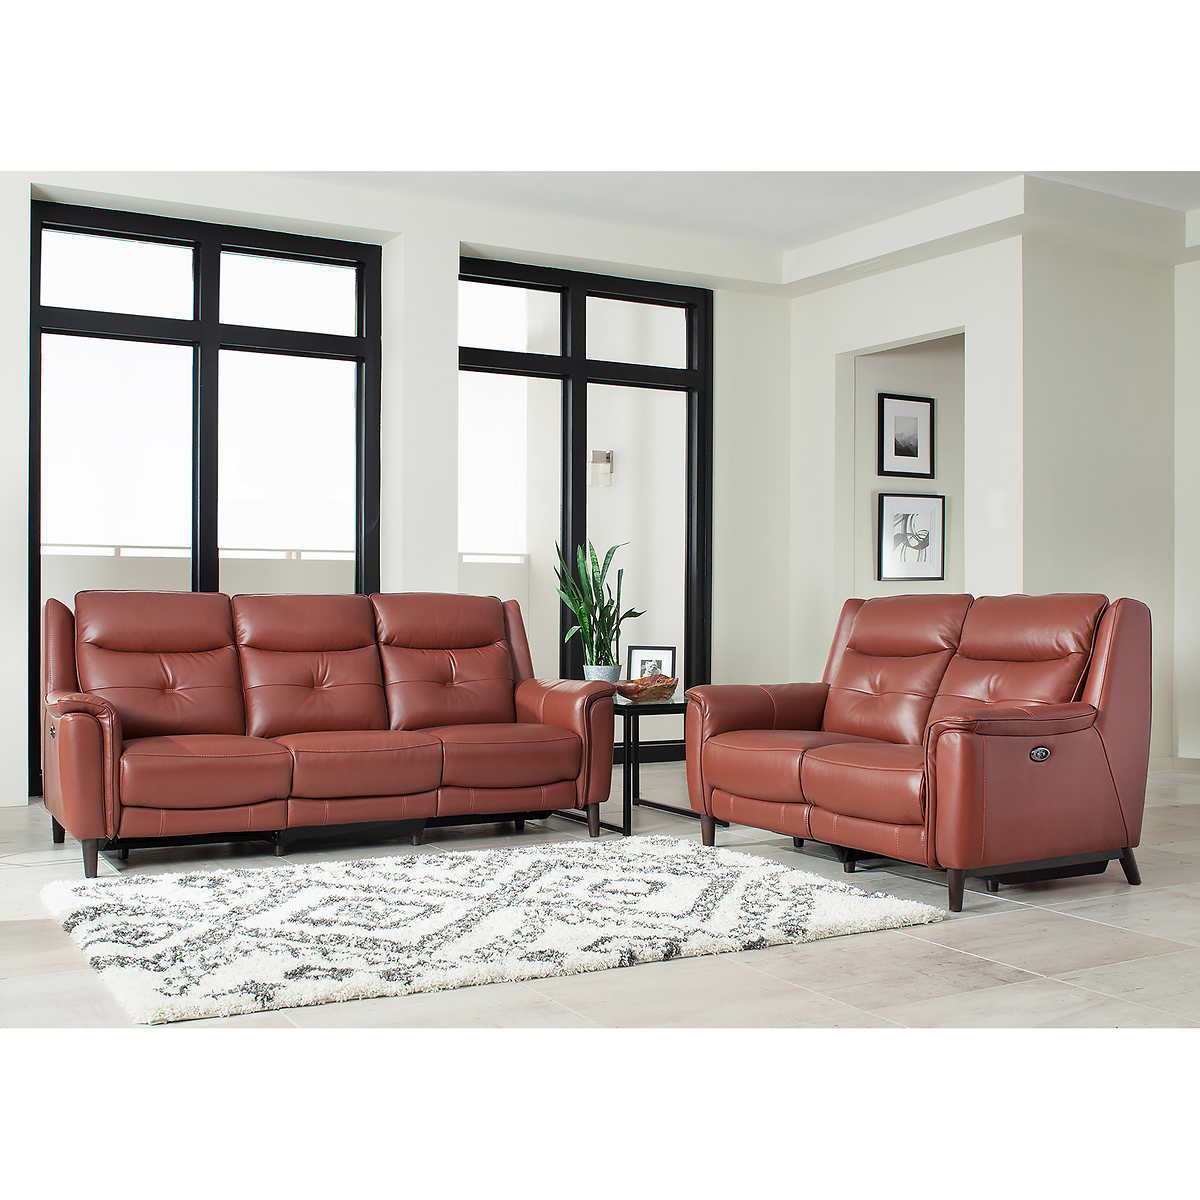 Top Grain Leather Reclining Sofa And Loveseat Hereo Sofa